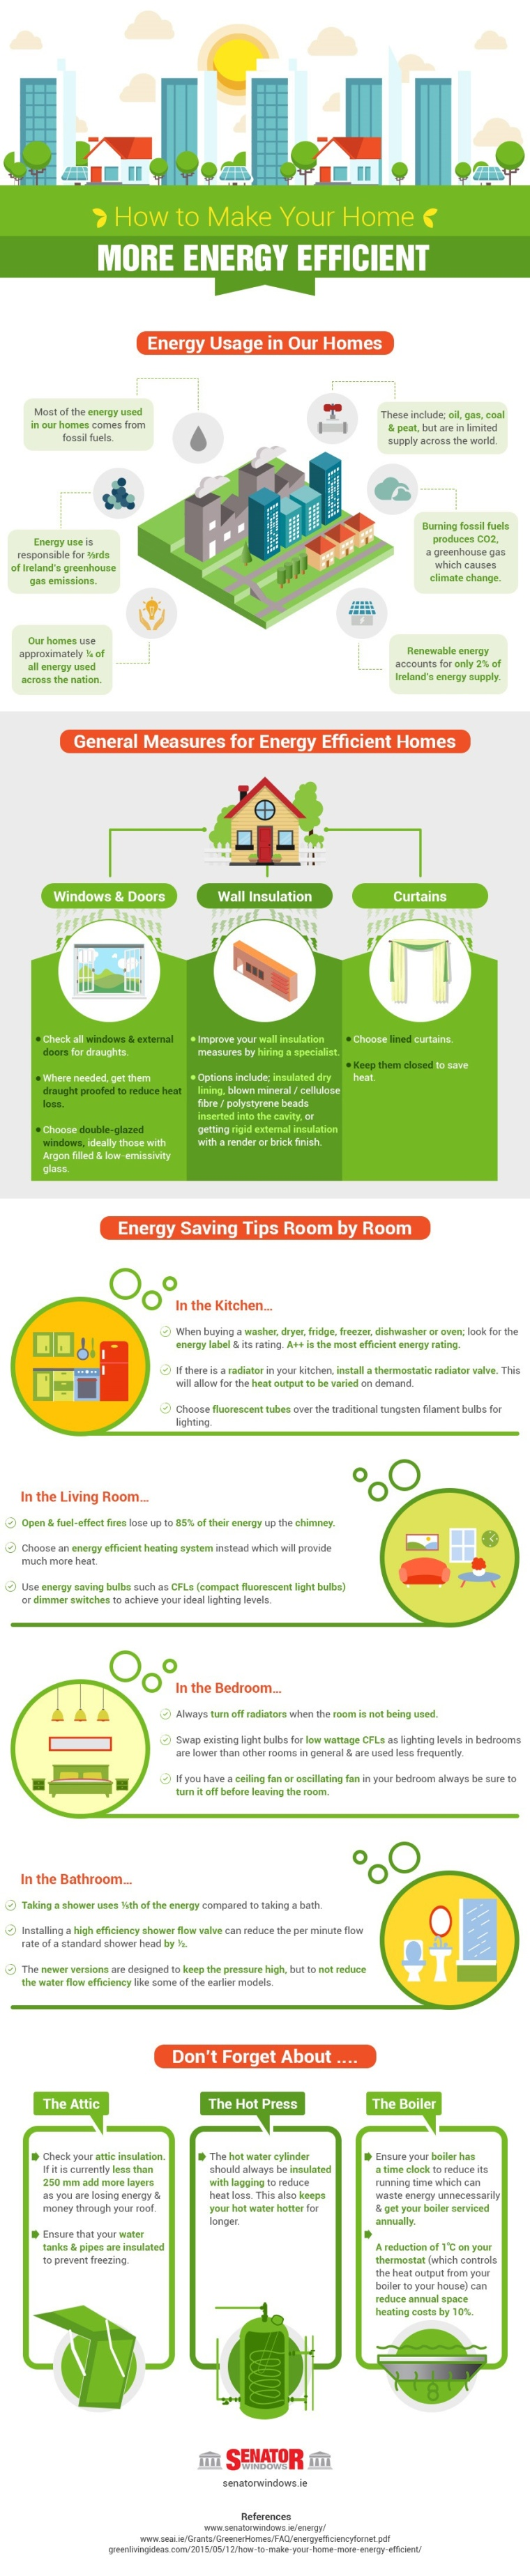 Make Your Home More Energy Efficient [Infographic] | ecogreenlove